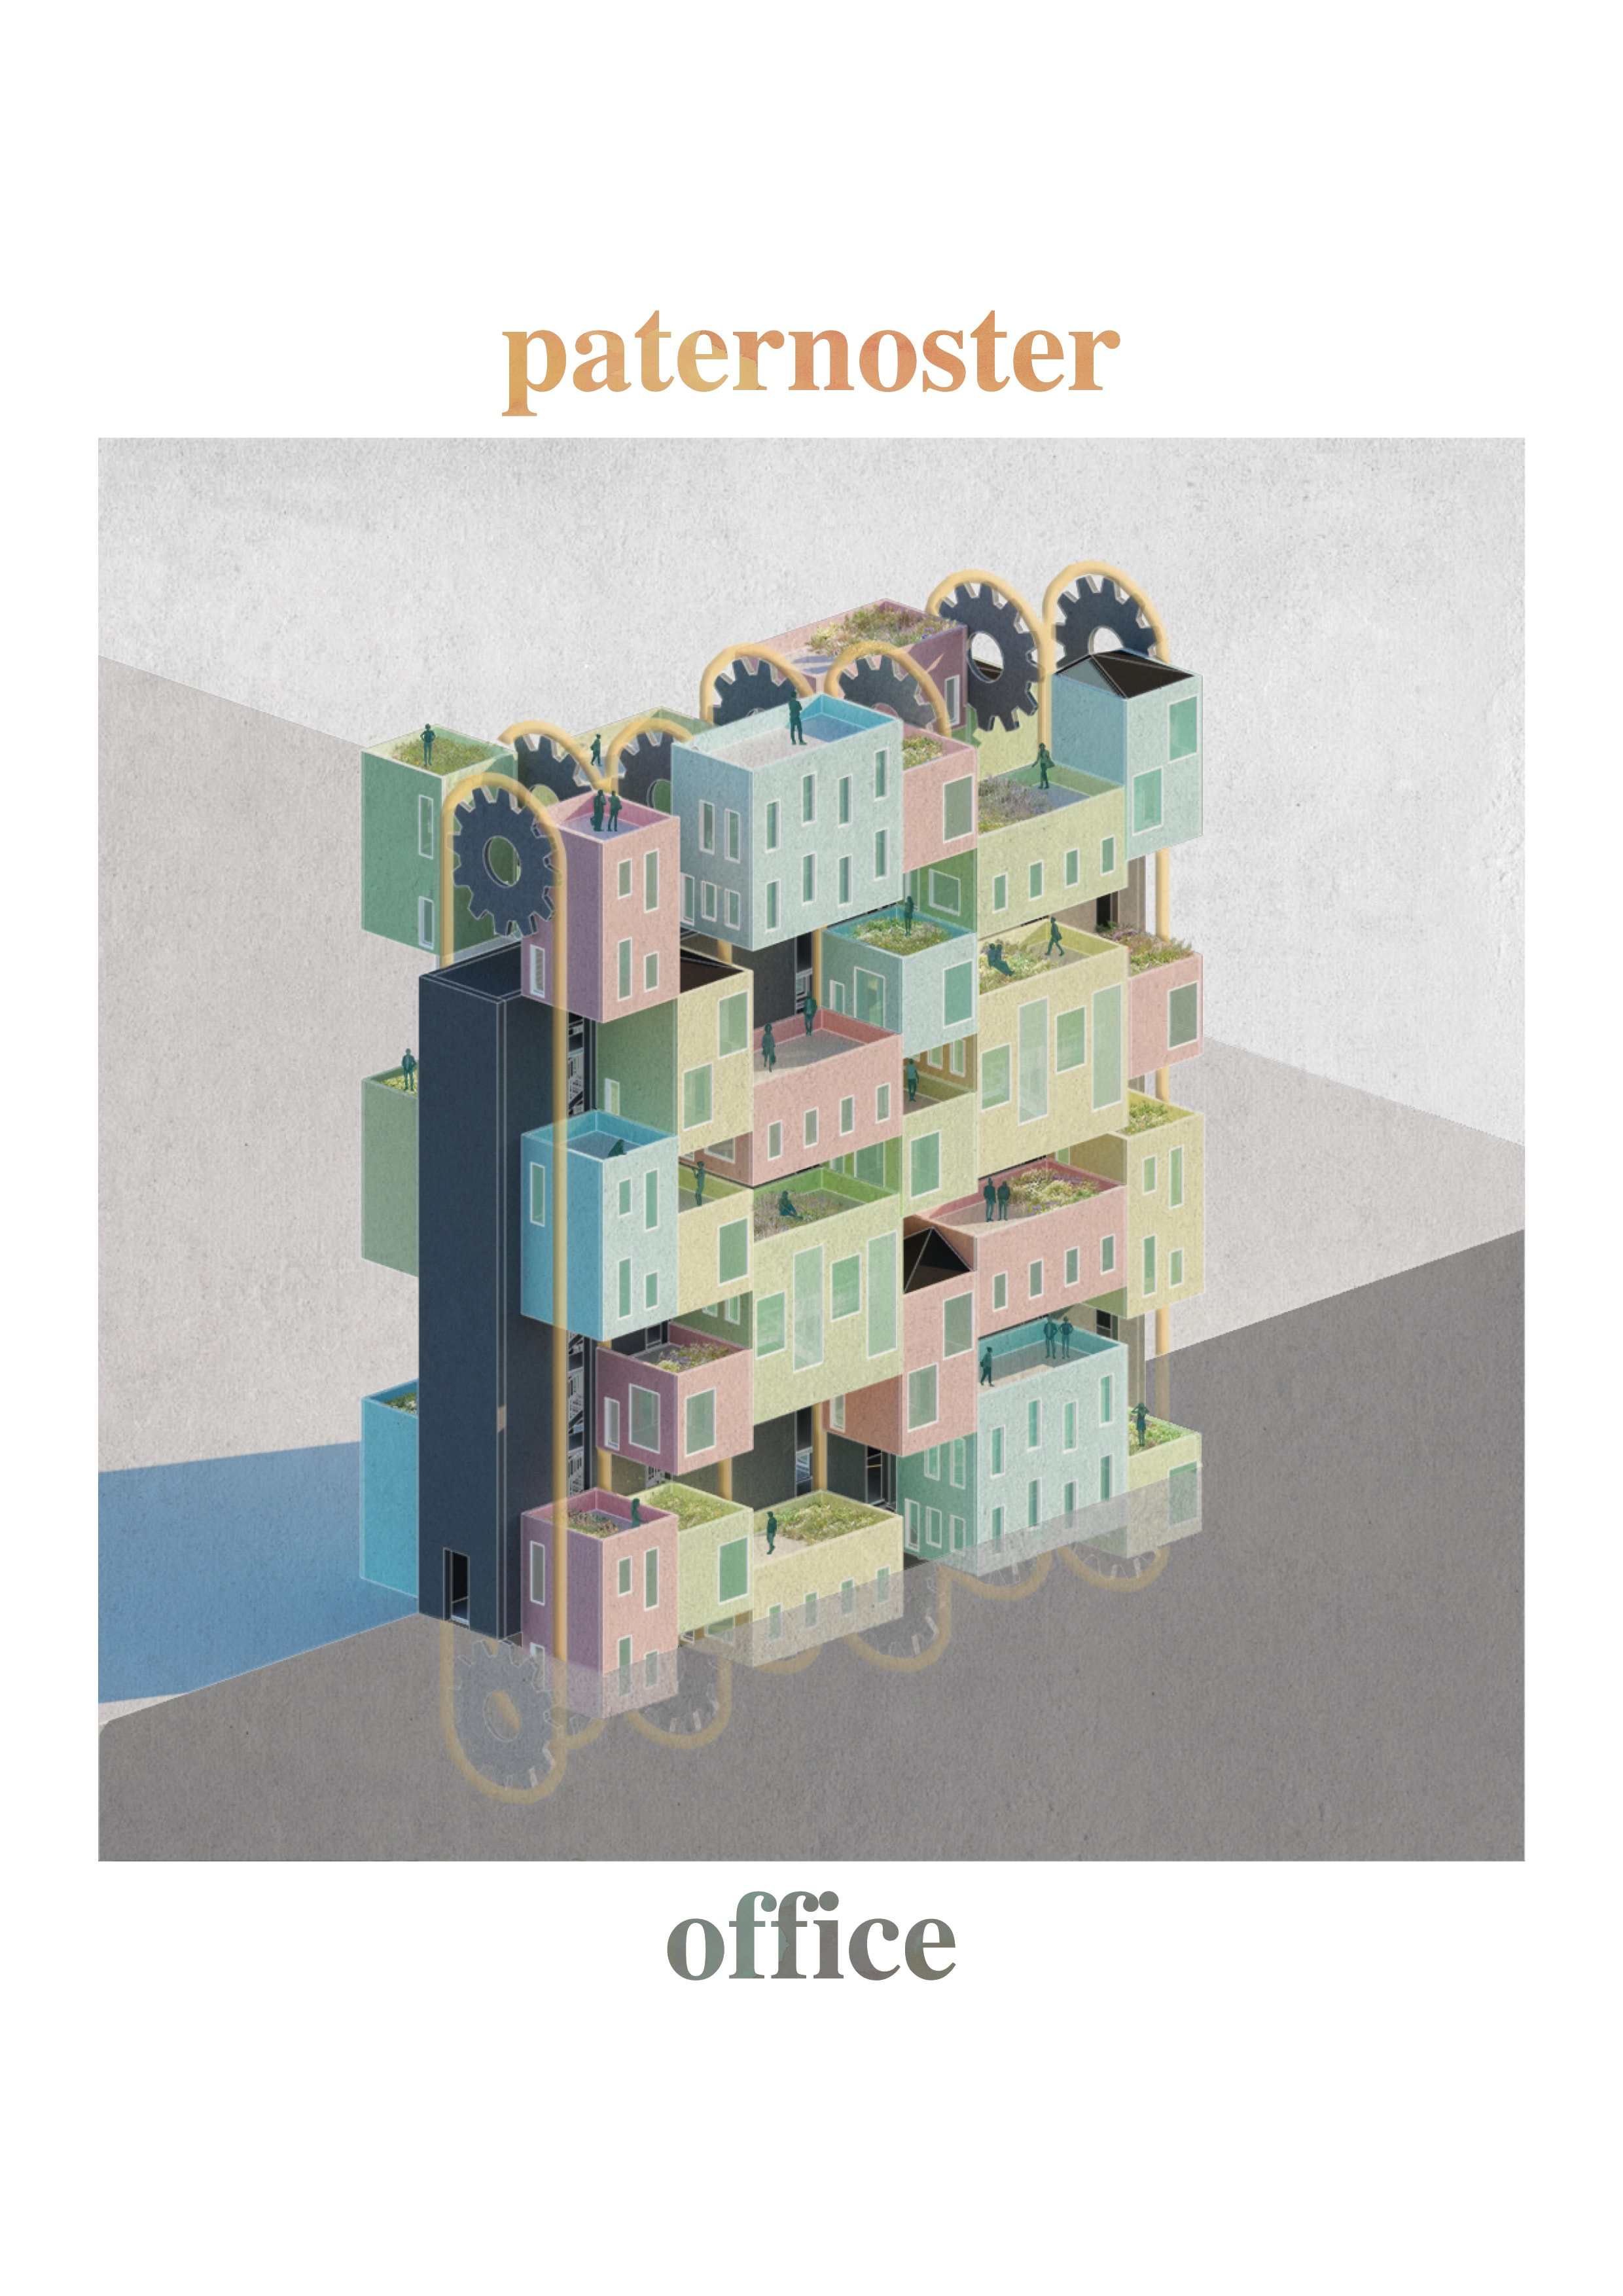 Paternoster Office